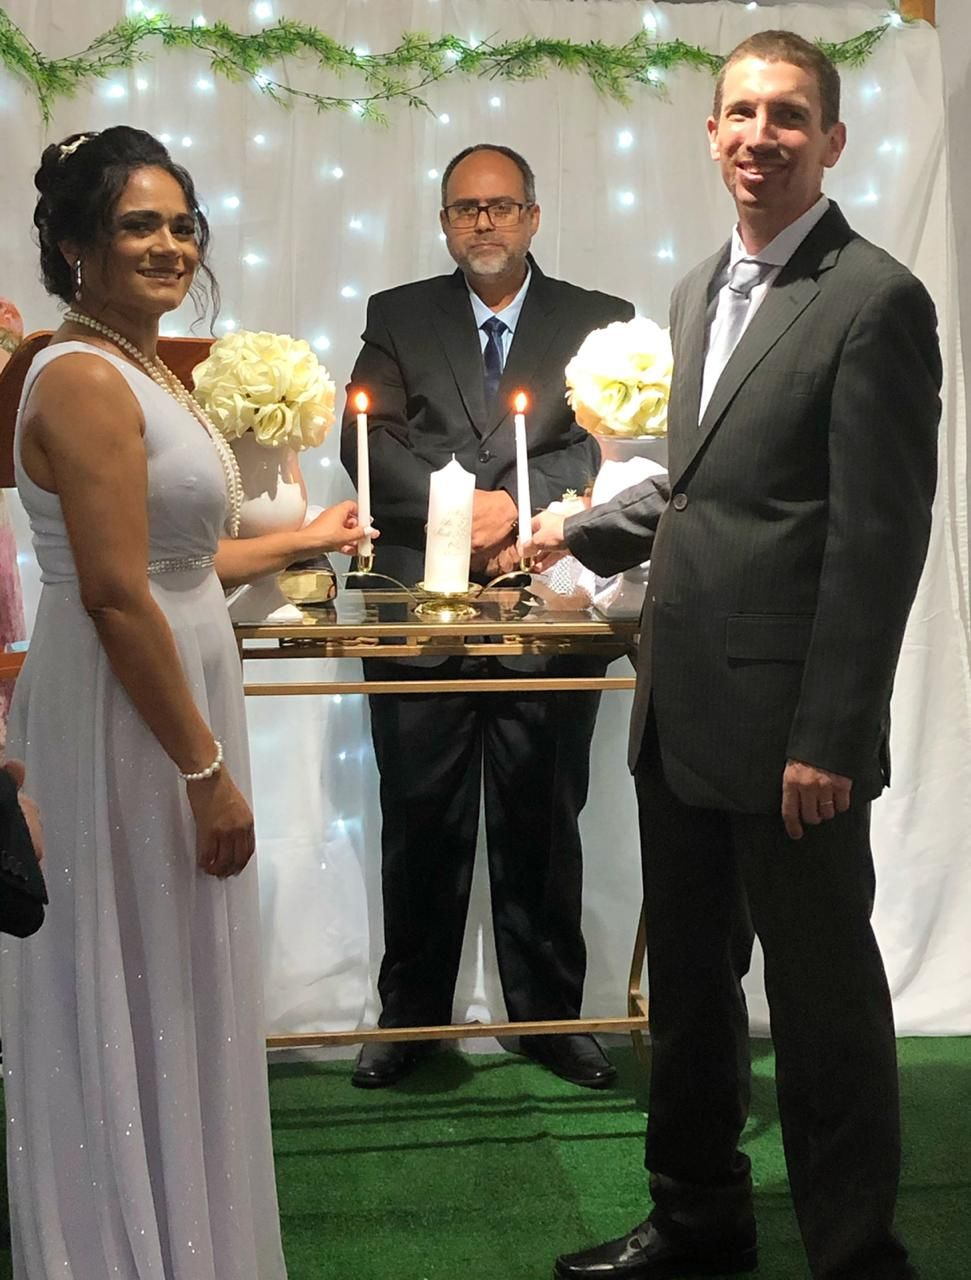 Brazilian bride in white dress lighting wedding candles with American groom